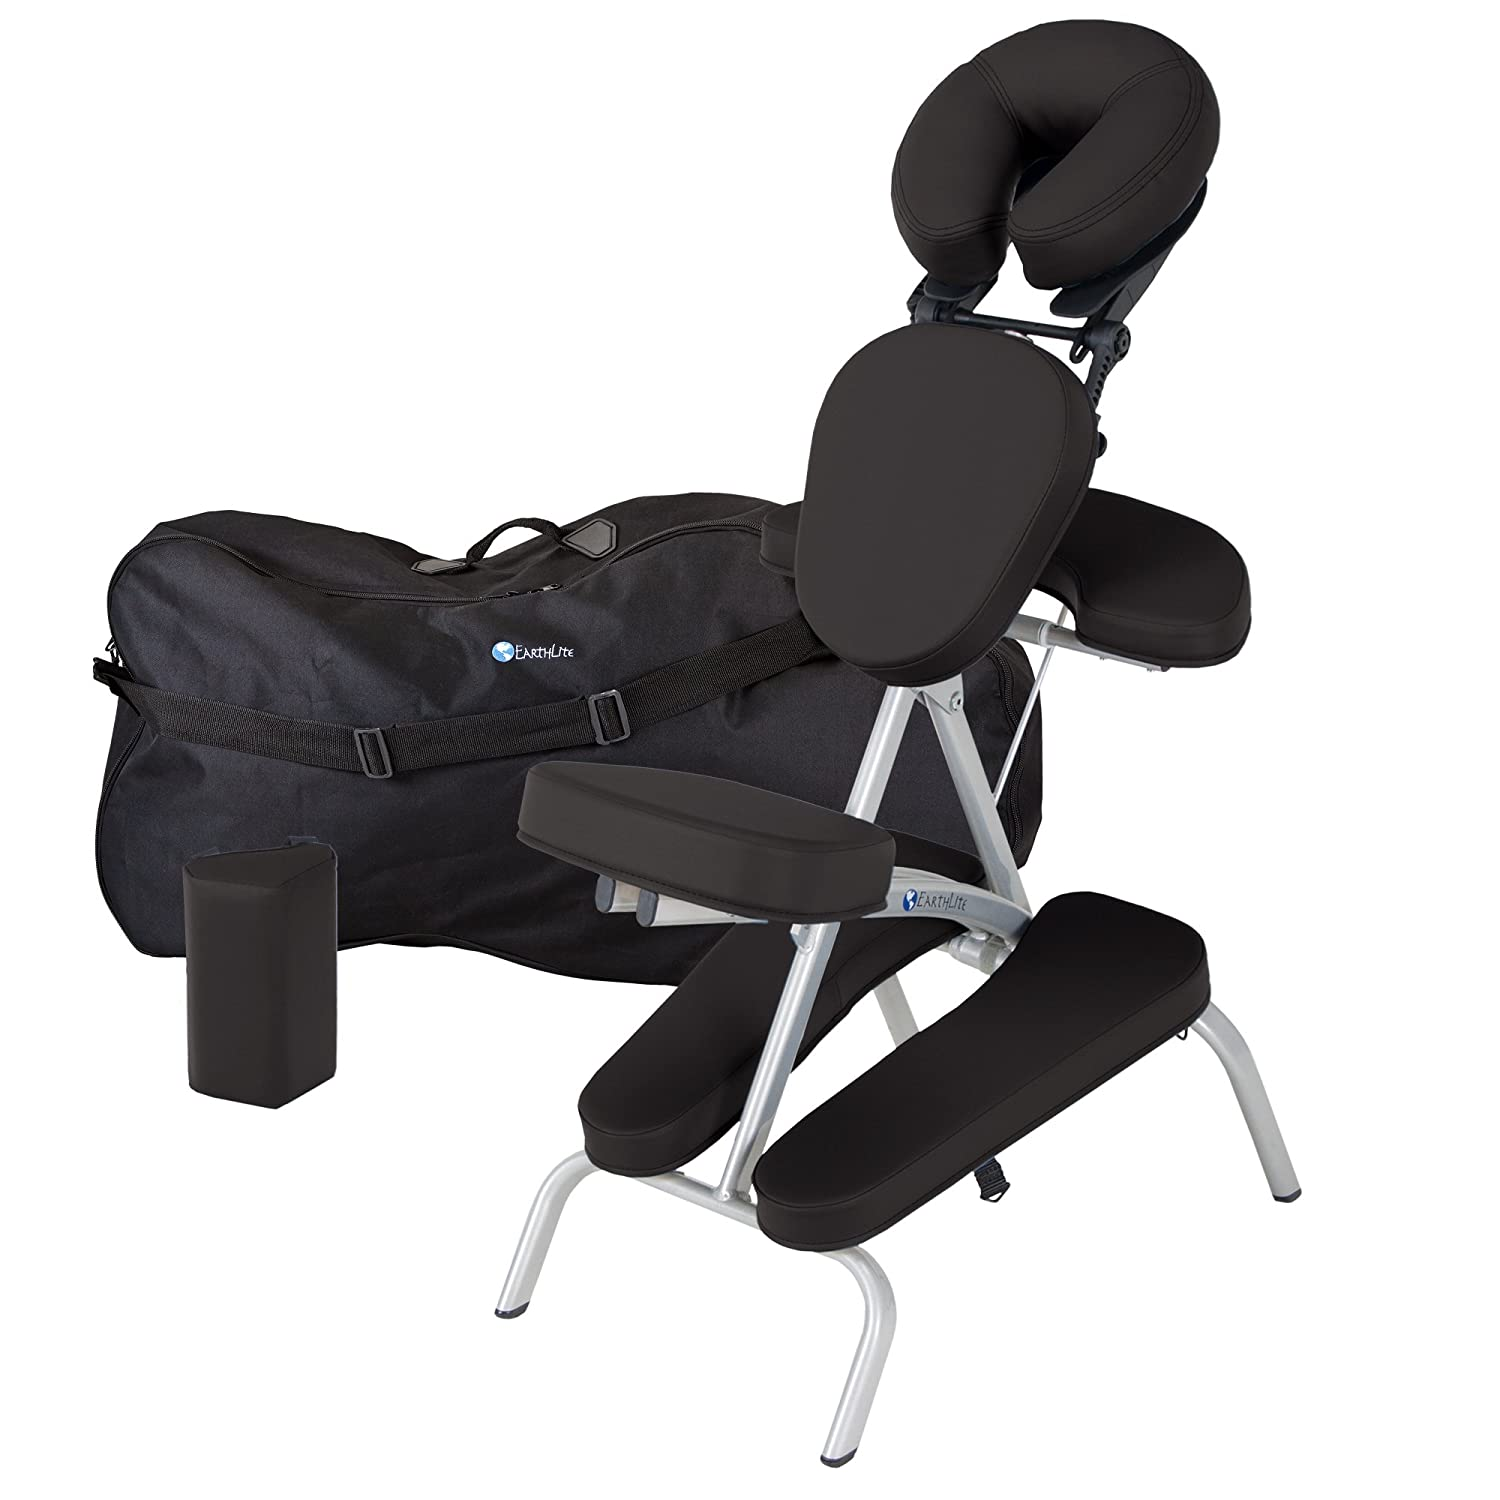 dp chair in massage robotouch rbt royal amazon health personal care